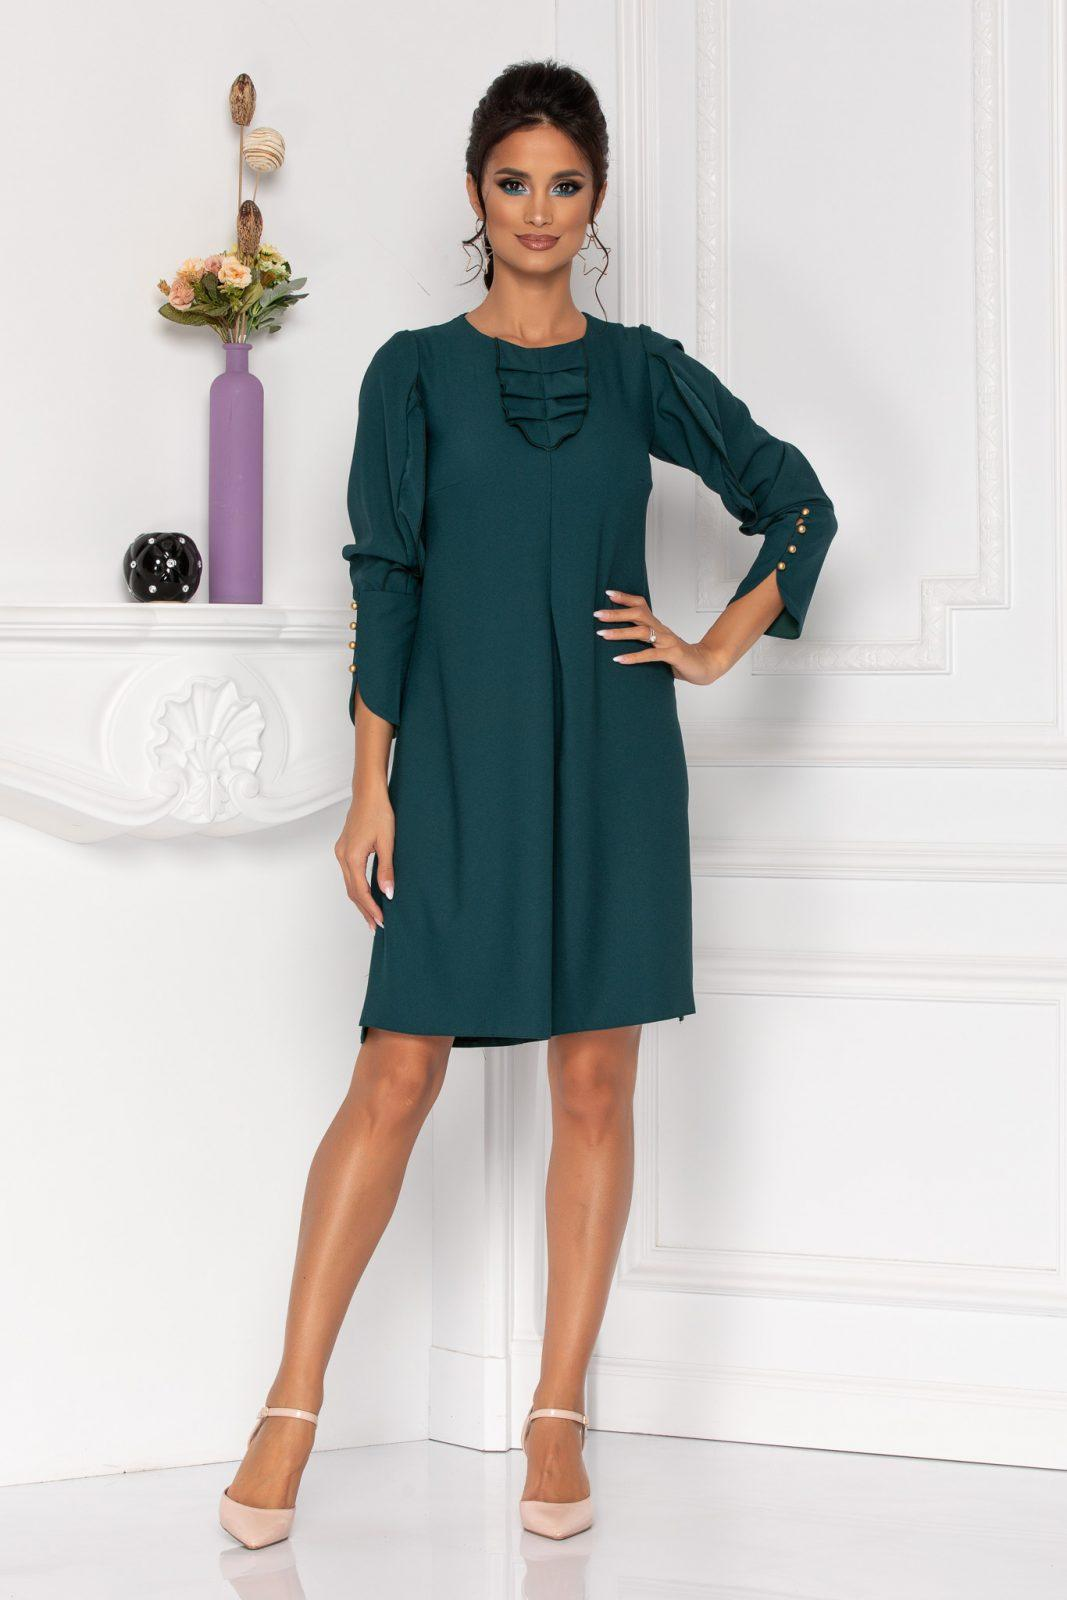 Moze Flavia Green Dress